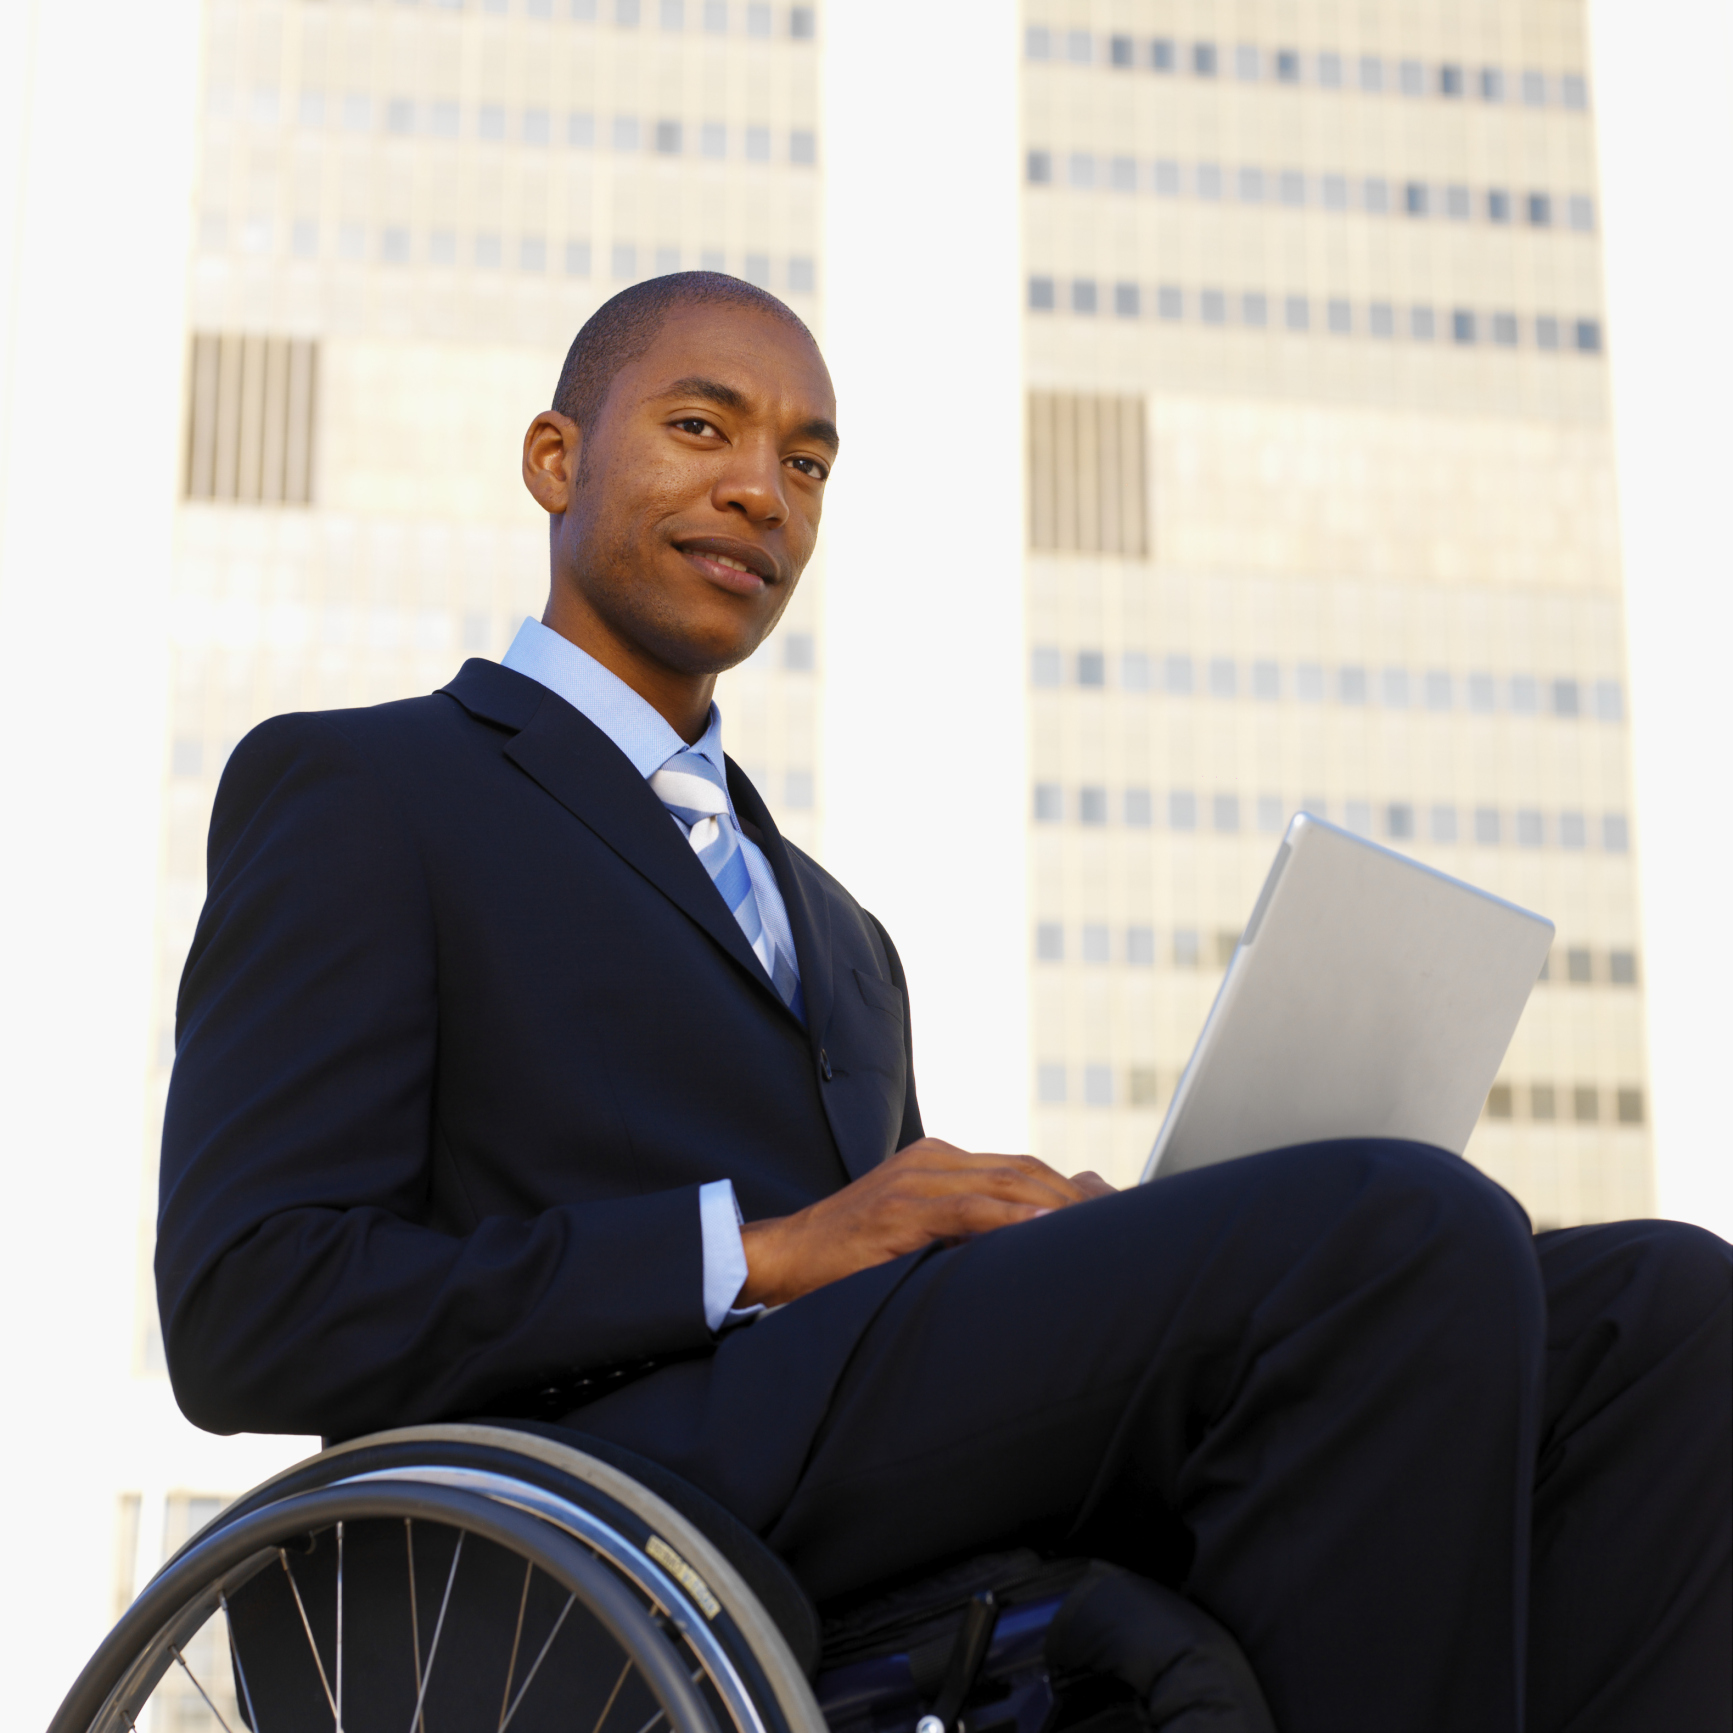 Online Job Fairs: Viable Option for Disabled Job Seekers